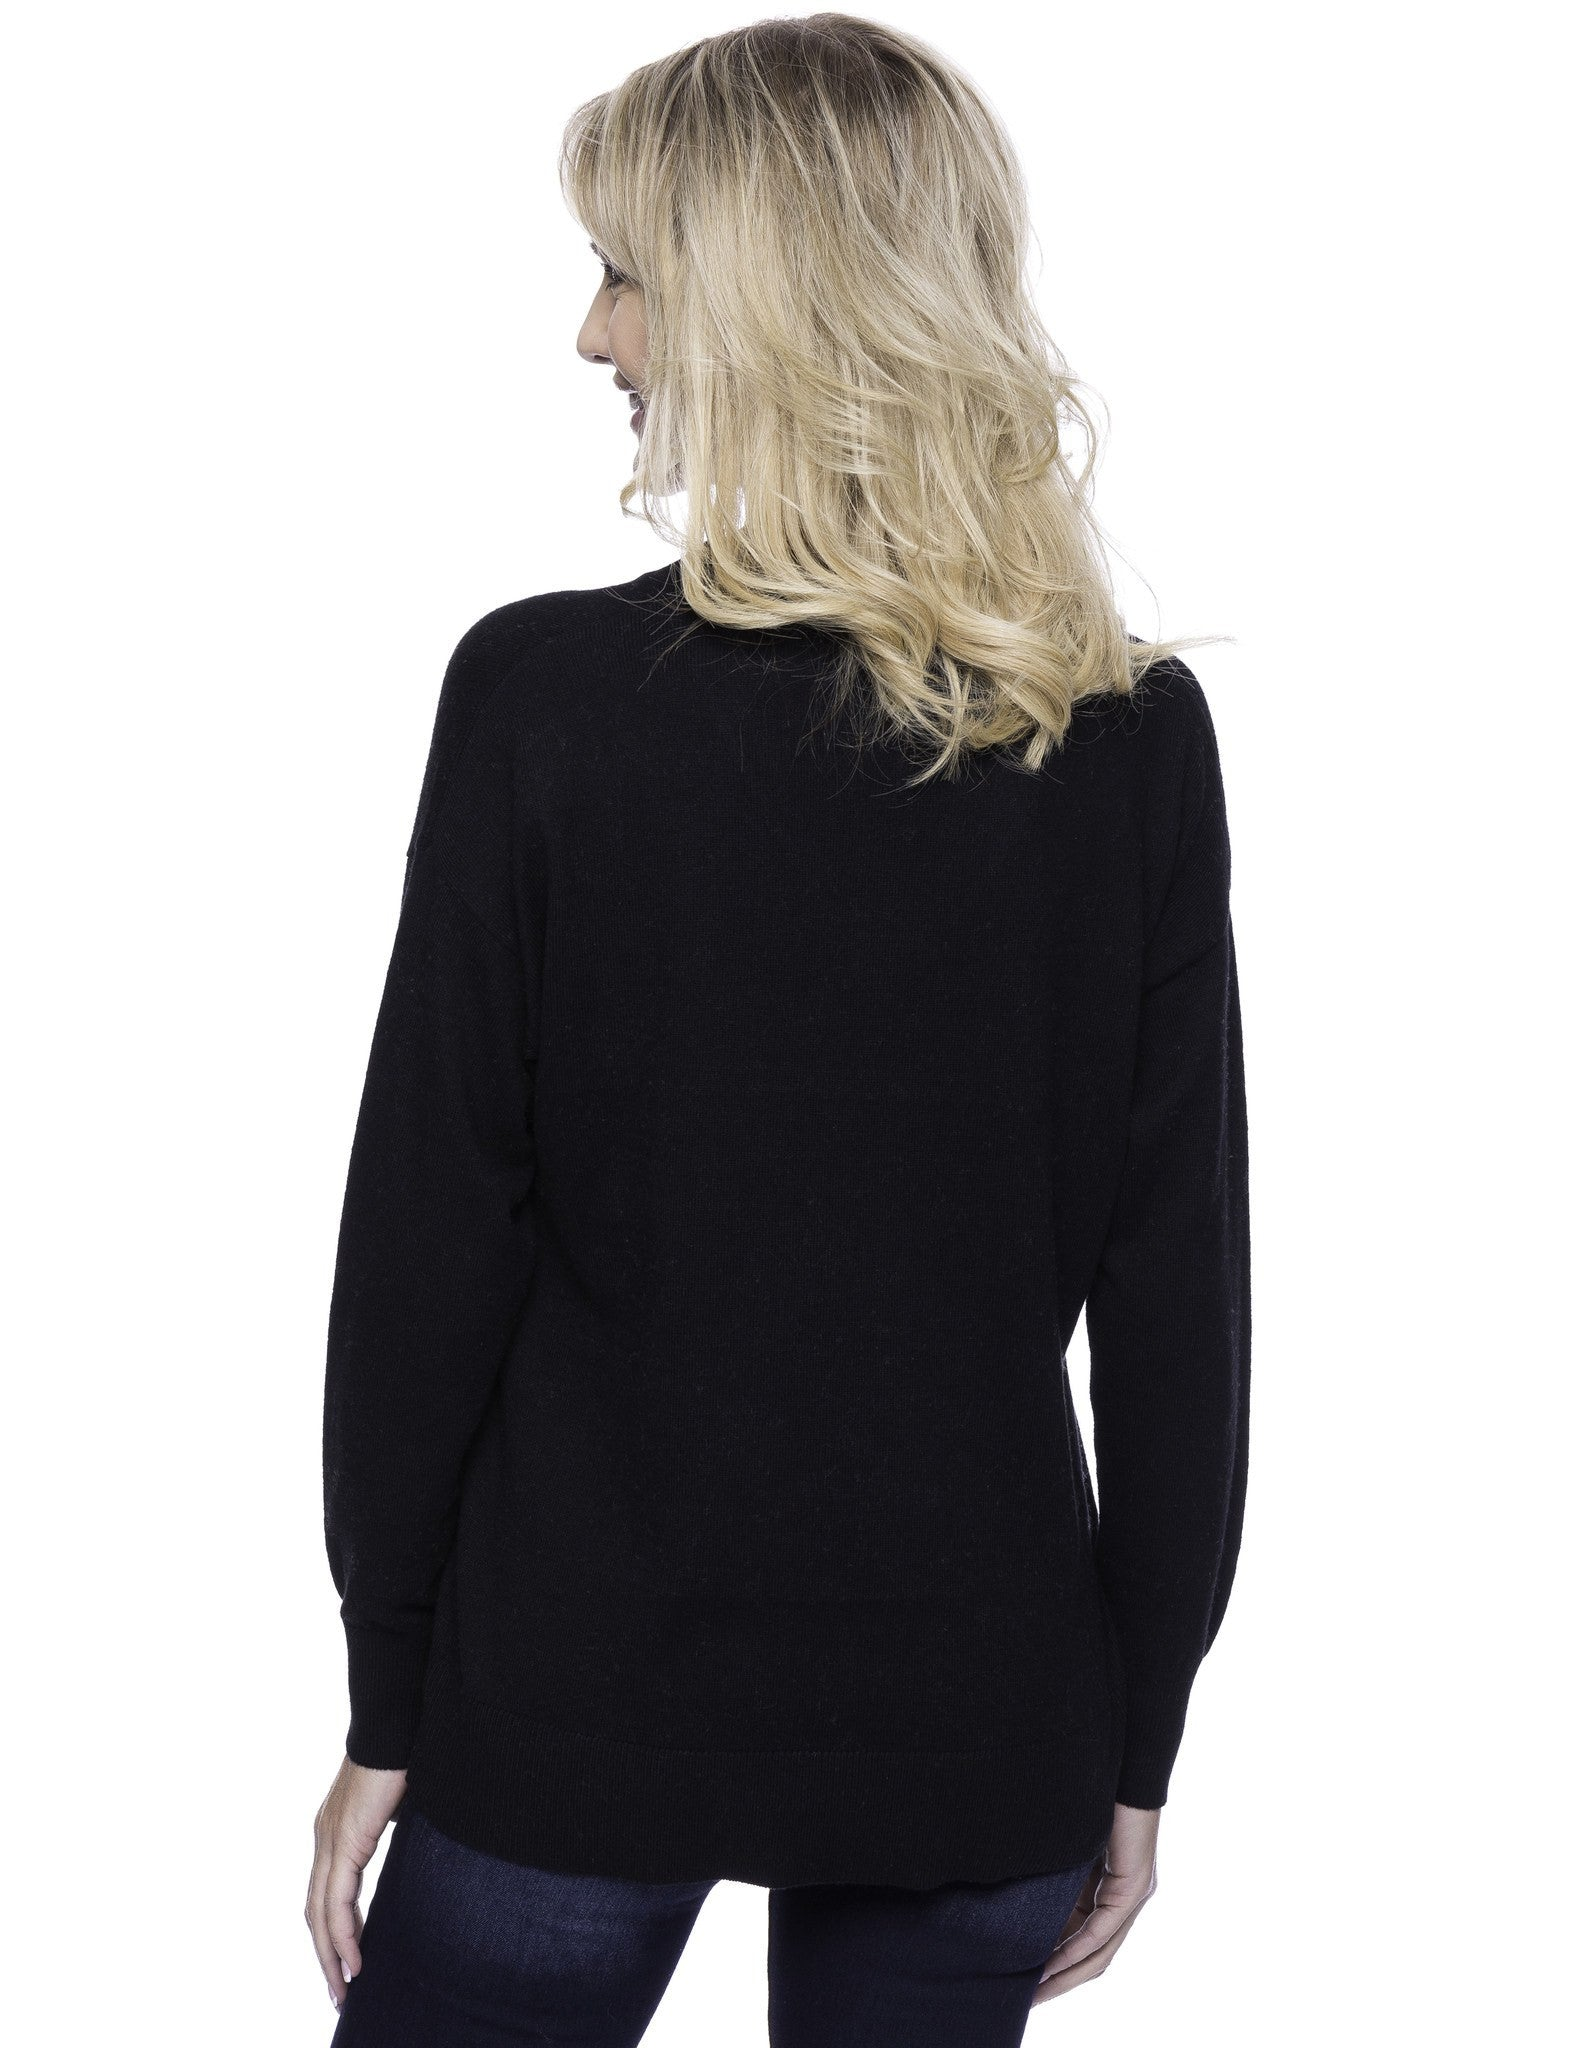 Tocco Reale Women's Cashmere Blend Deep V-Neck Sweater - Black